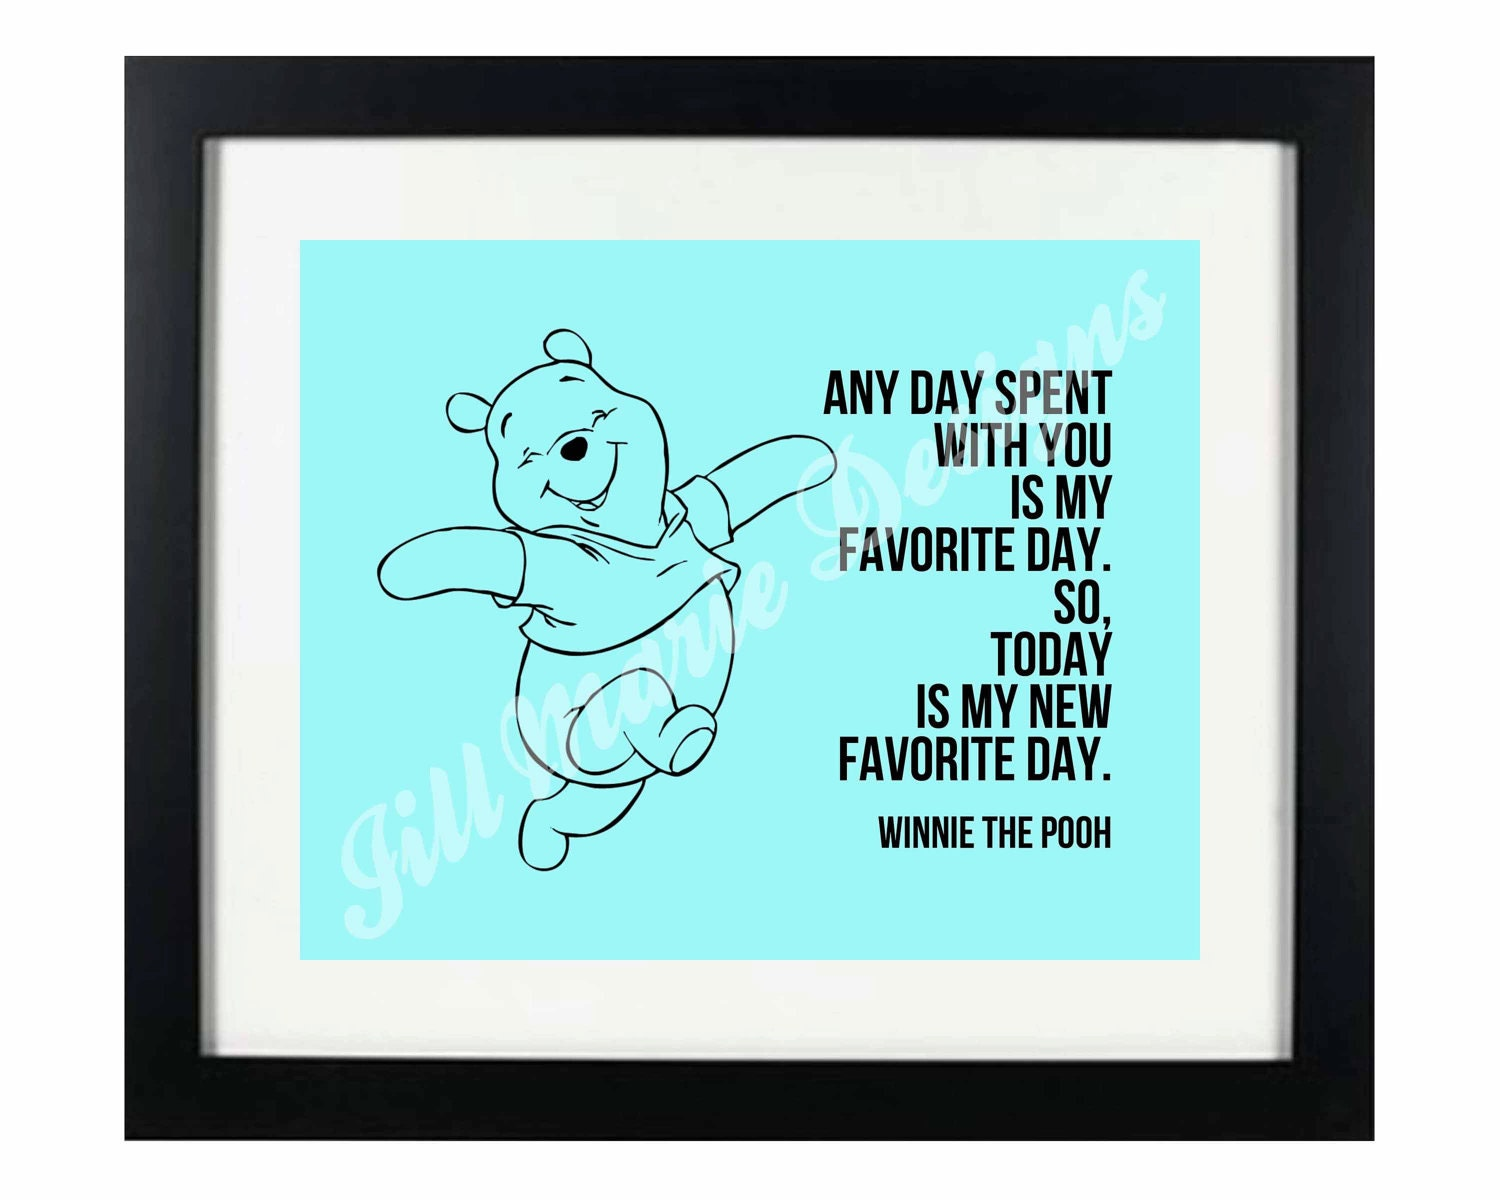 Winnie The Pooh Quotes: Winnie The Pooh Favorite Day Quote Home Or